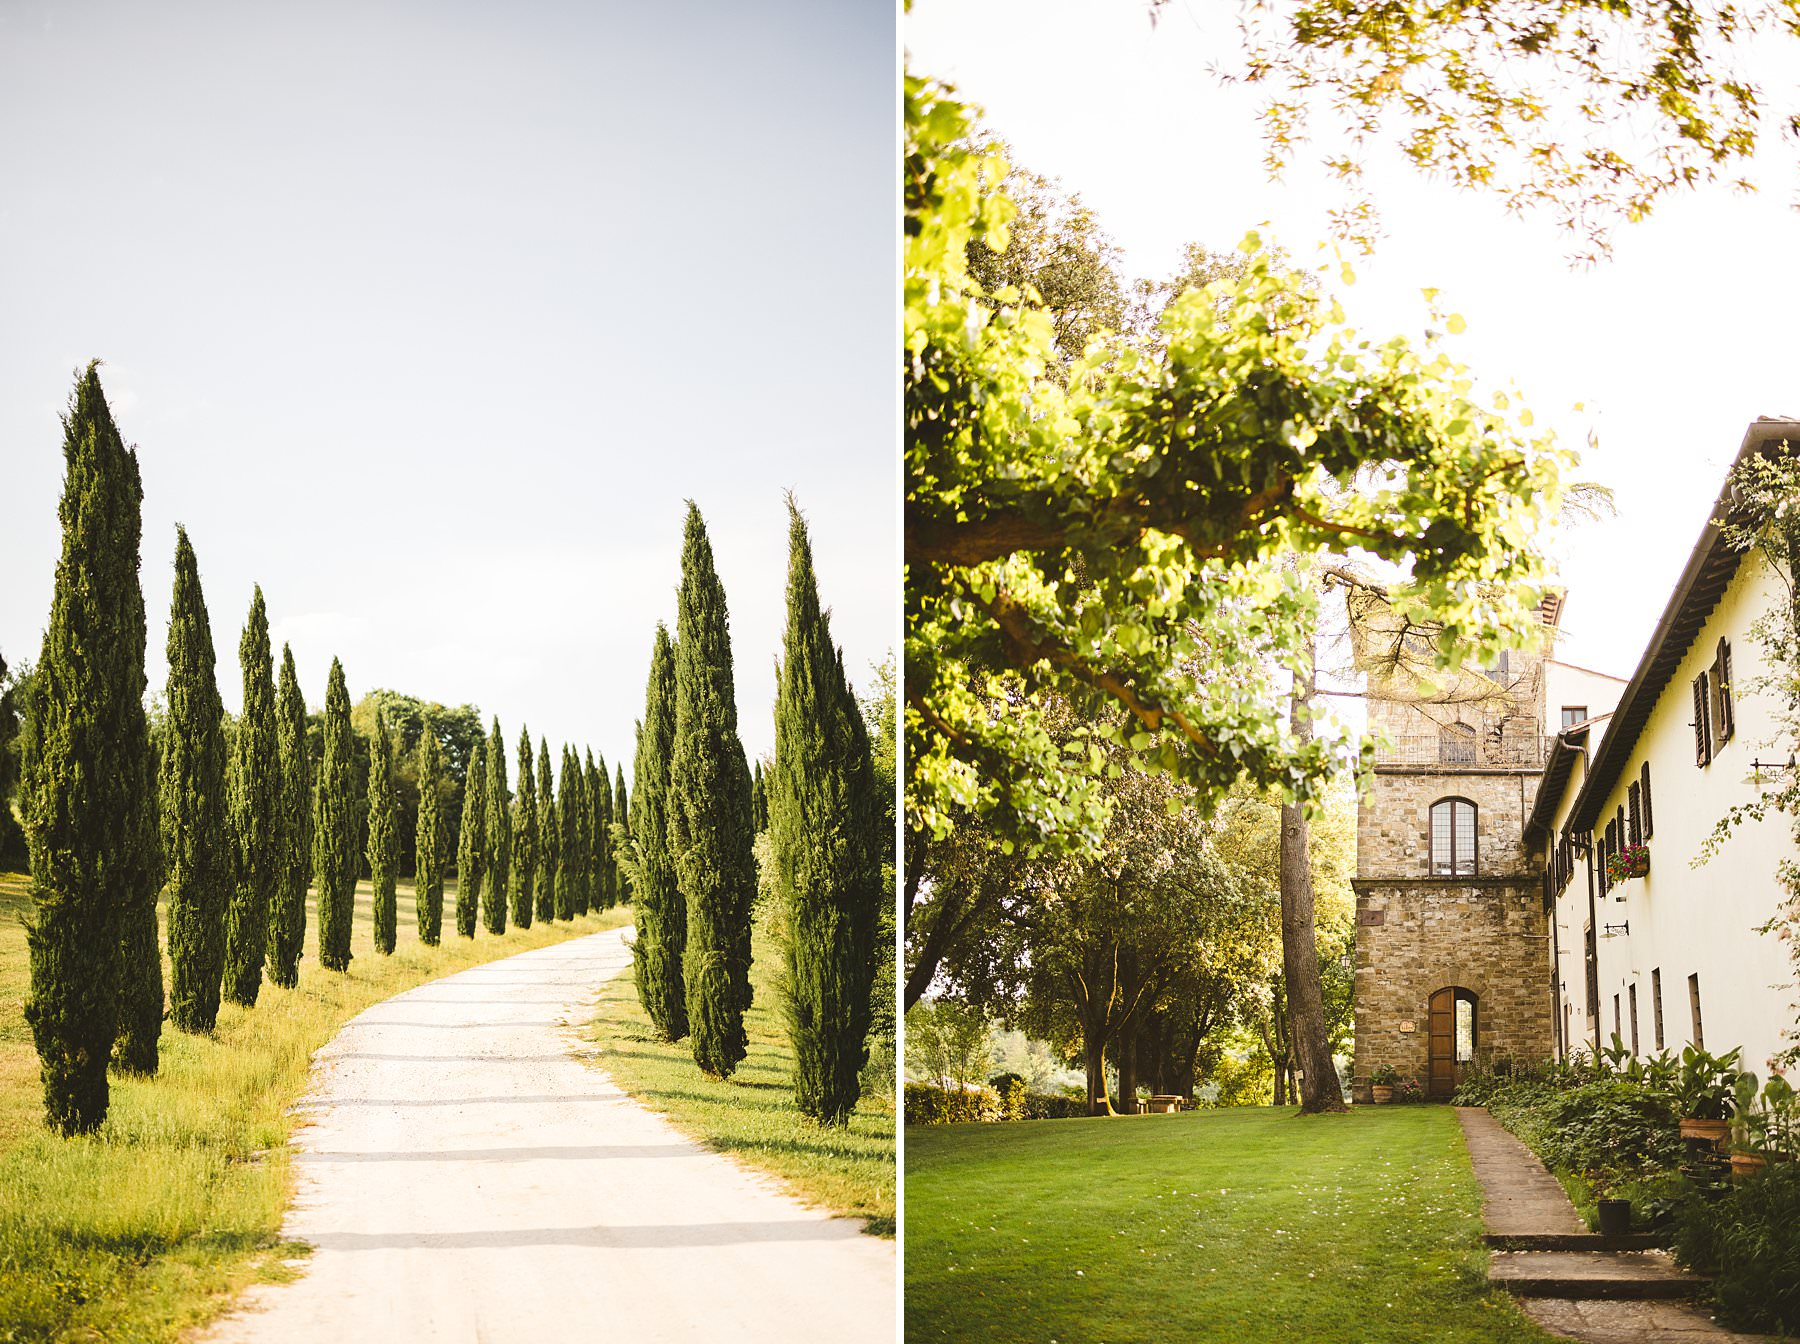 Poggio Tre Lune is a perfect place located in the countryside of Tuscany near Florence to enjoy a summer vacation and also to organise a couple photo shoot and create everlasting memories